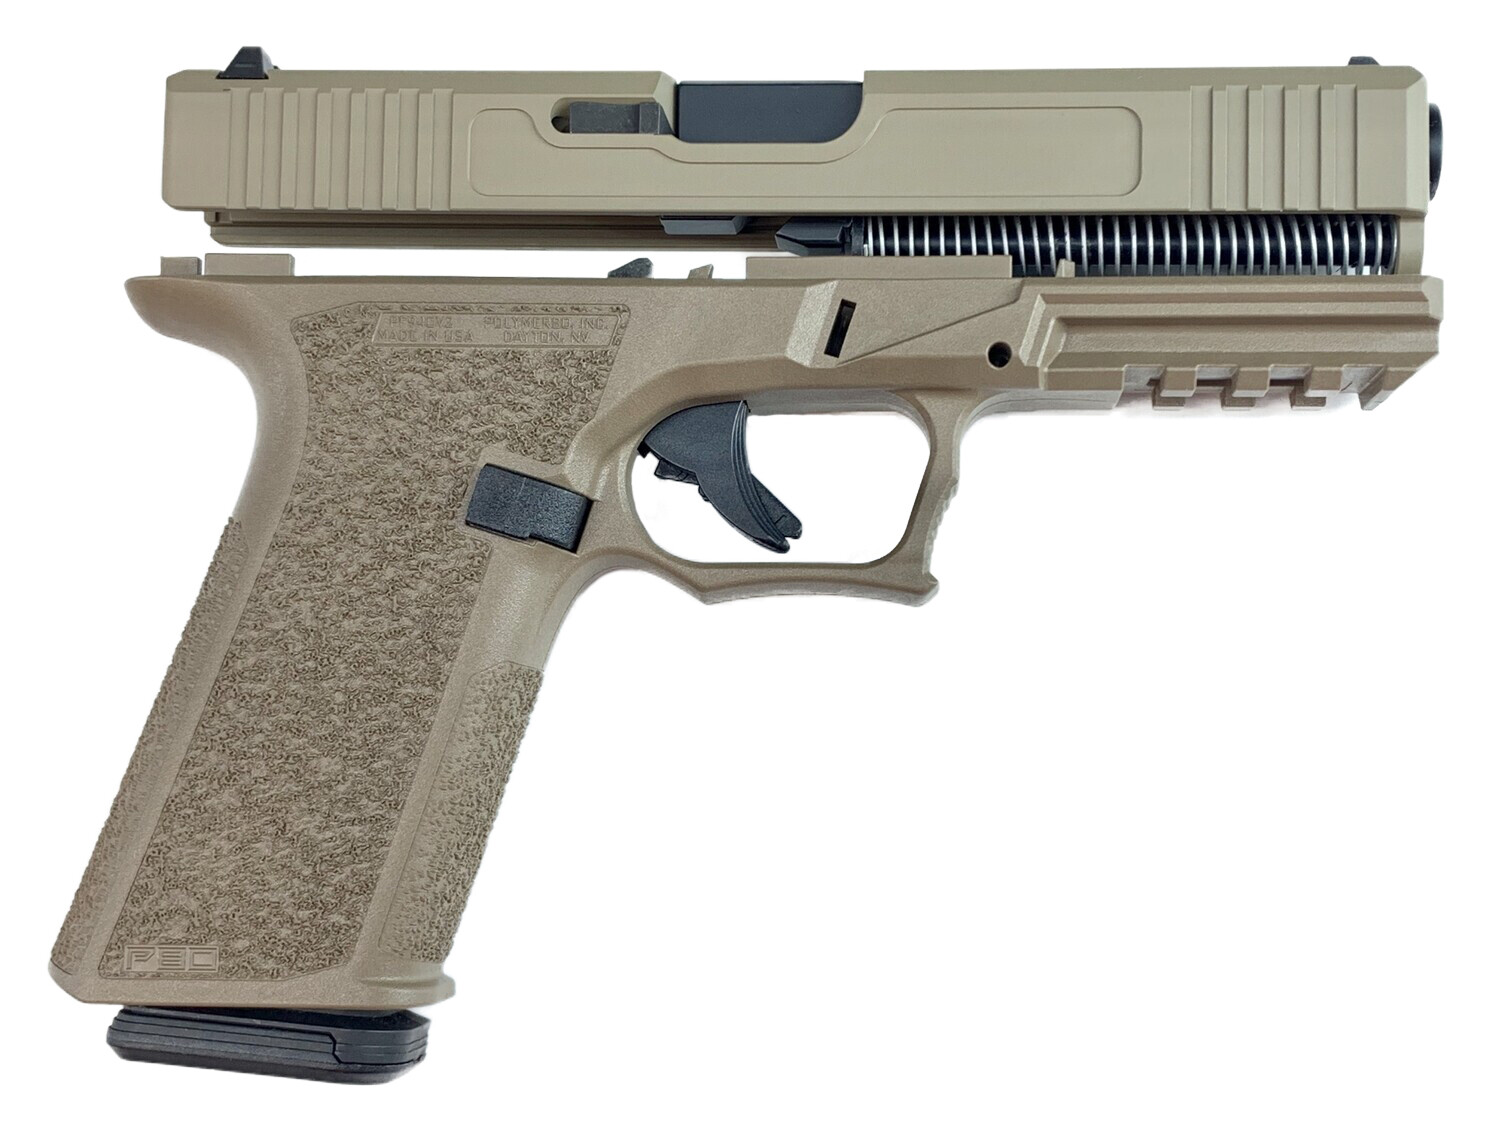 Patriot G17 80% Pistol Build Kit 9mm - Polymer80 PF940V2 - FDE